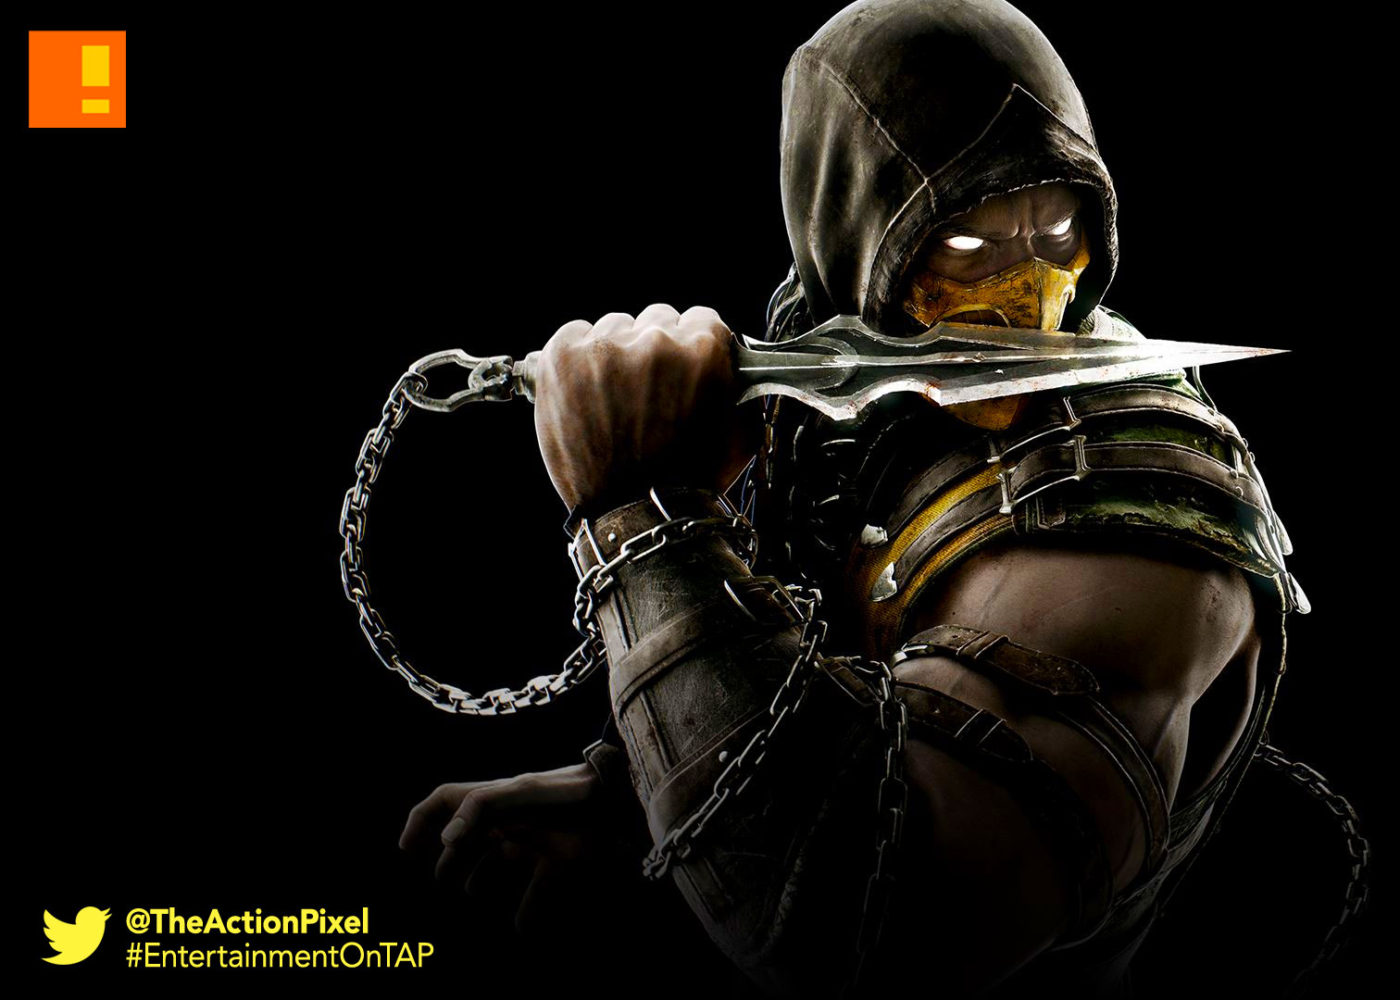 scorpion, mortal kombat, mkx, mortal kombat x, entertainment on tap, the action pixel,